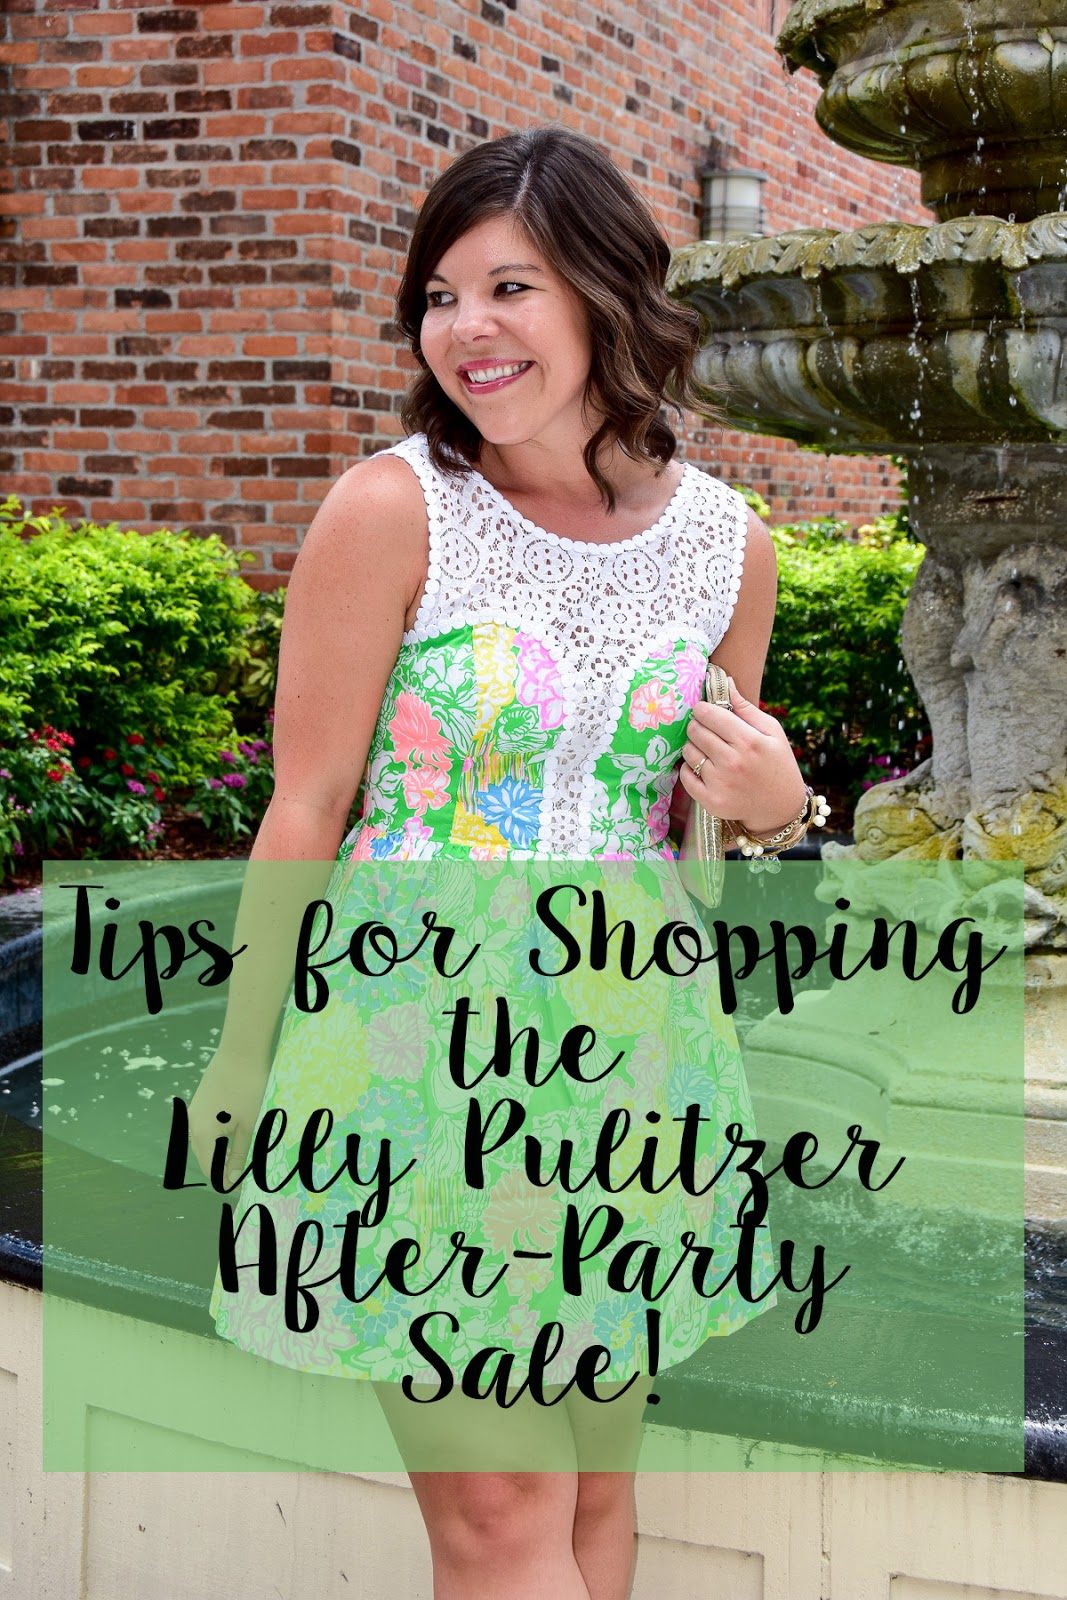 Tips for Shopping the Lilly Pulitzer After-Party Sale!